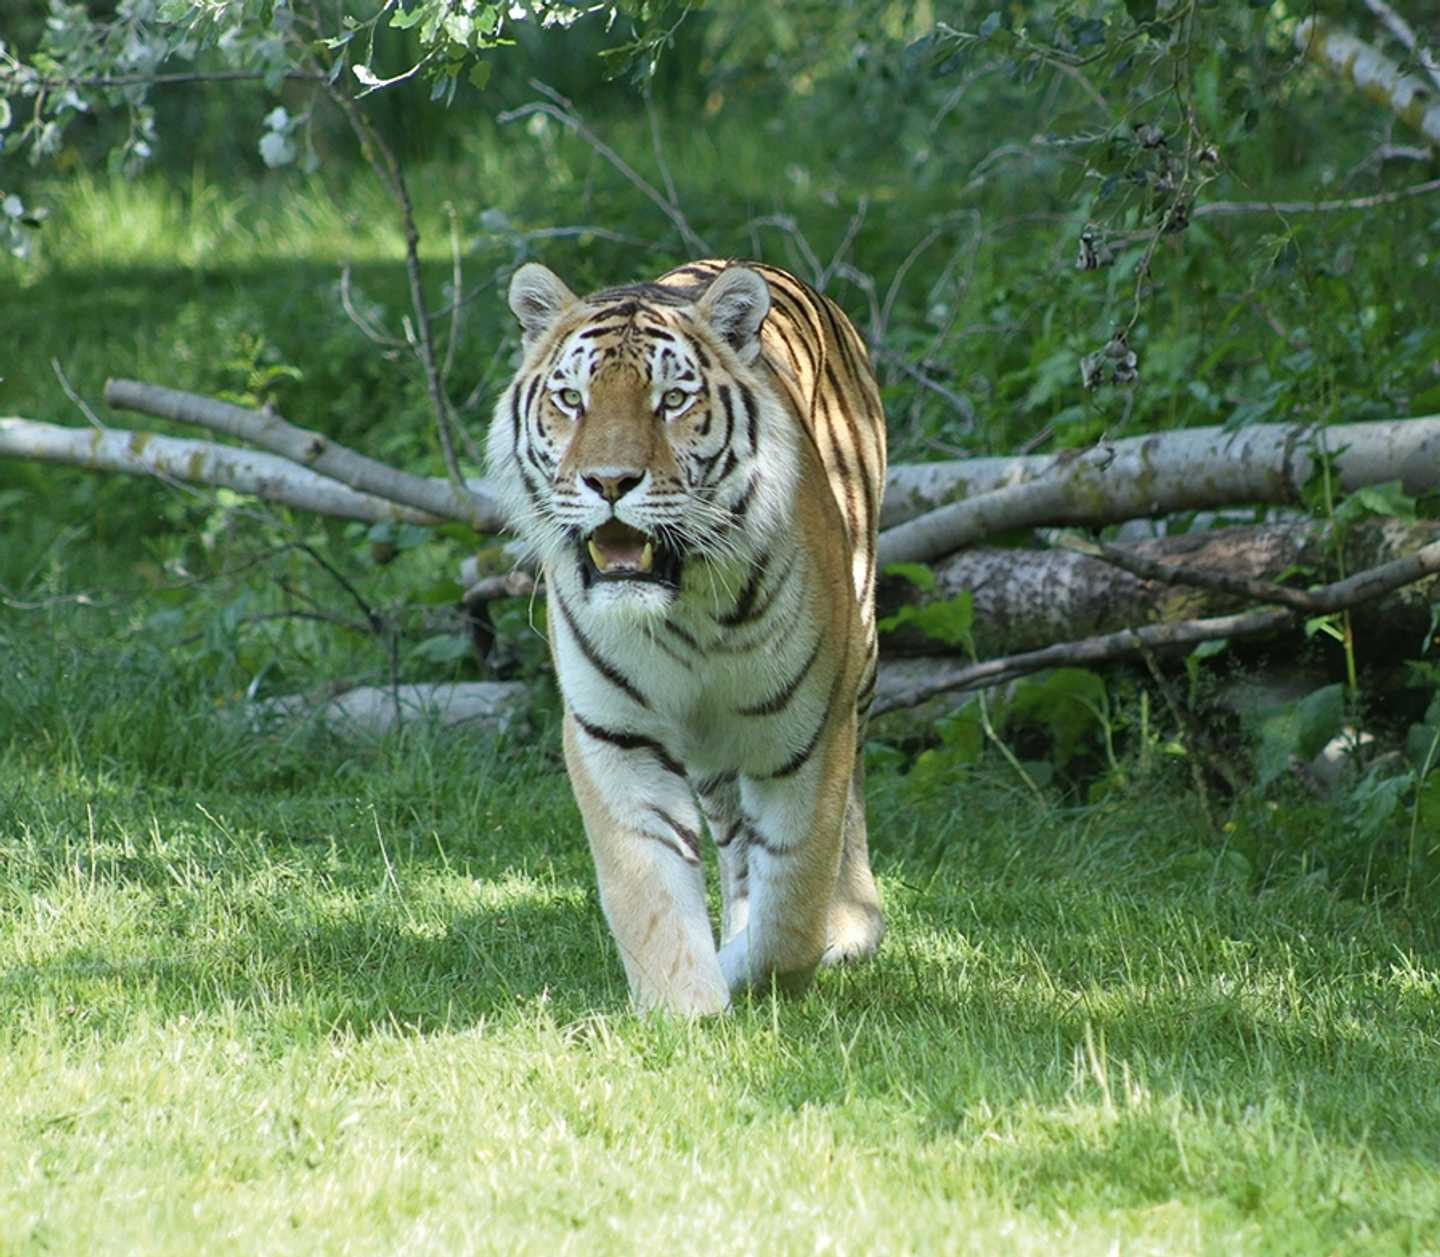 A tiger in the wildlife park